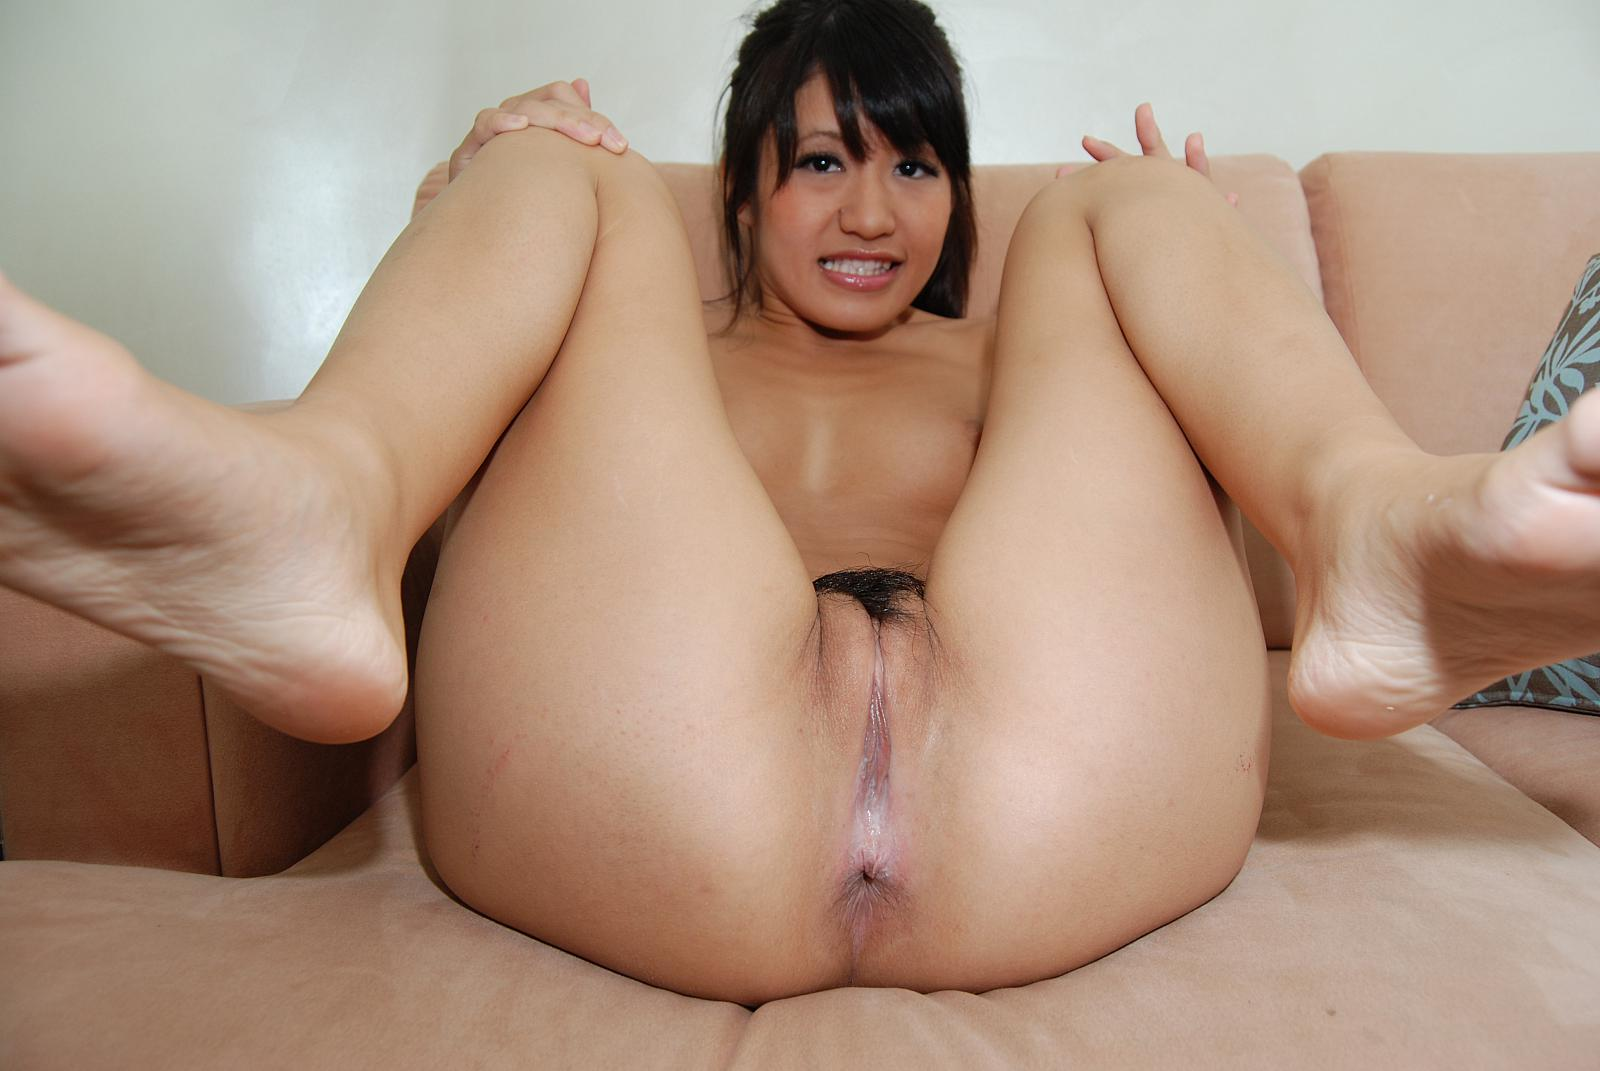 Remarkable, Hot asian pornos